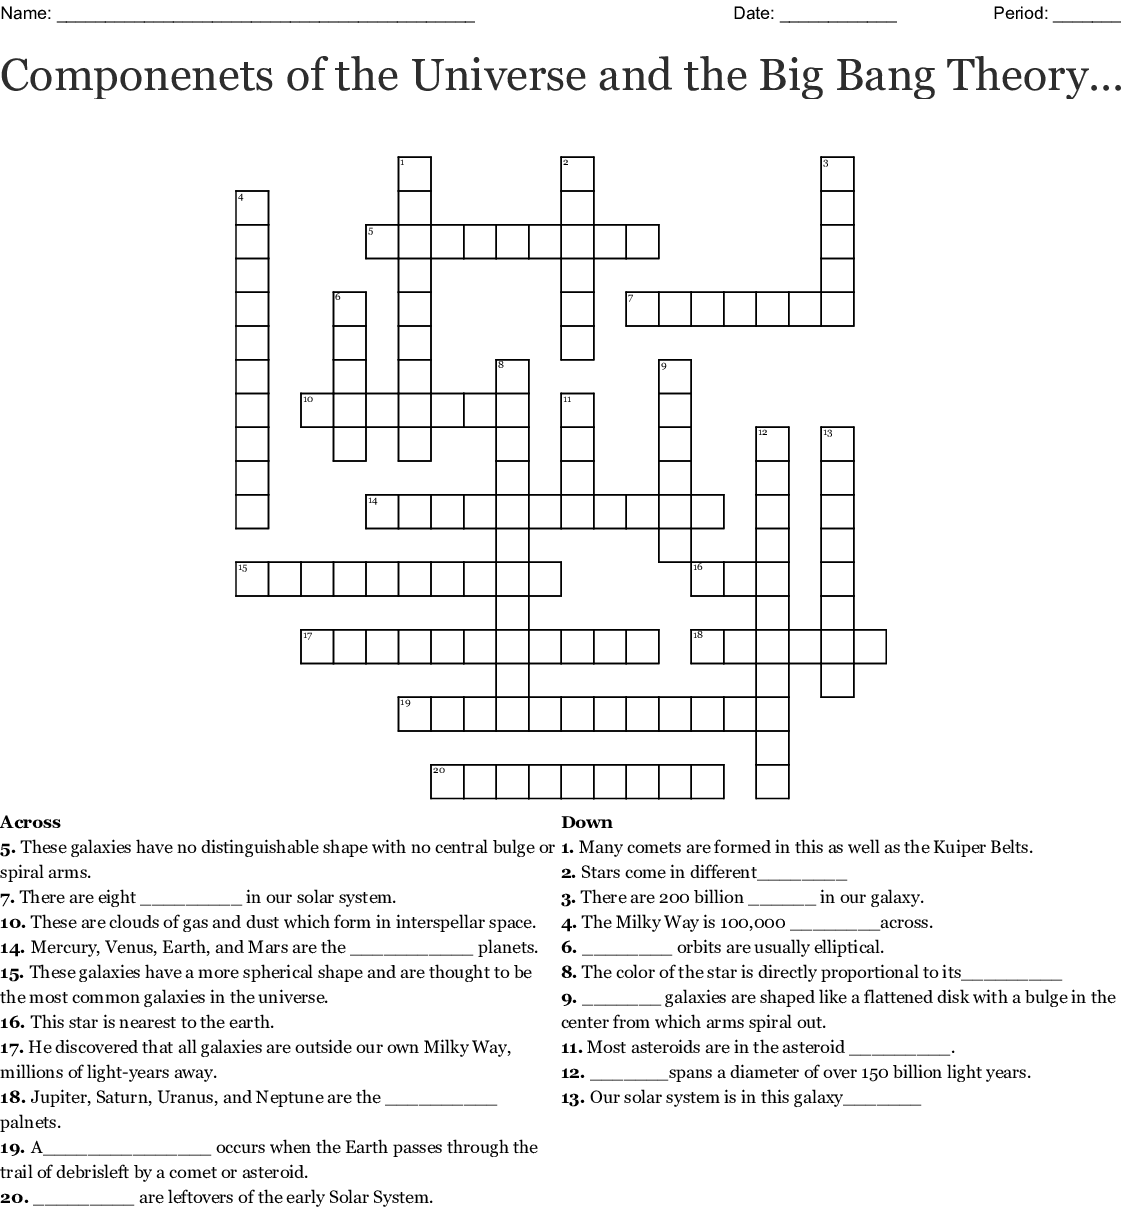 Componenets Of The Universe And The Big Bang Theory